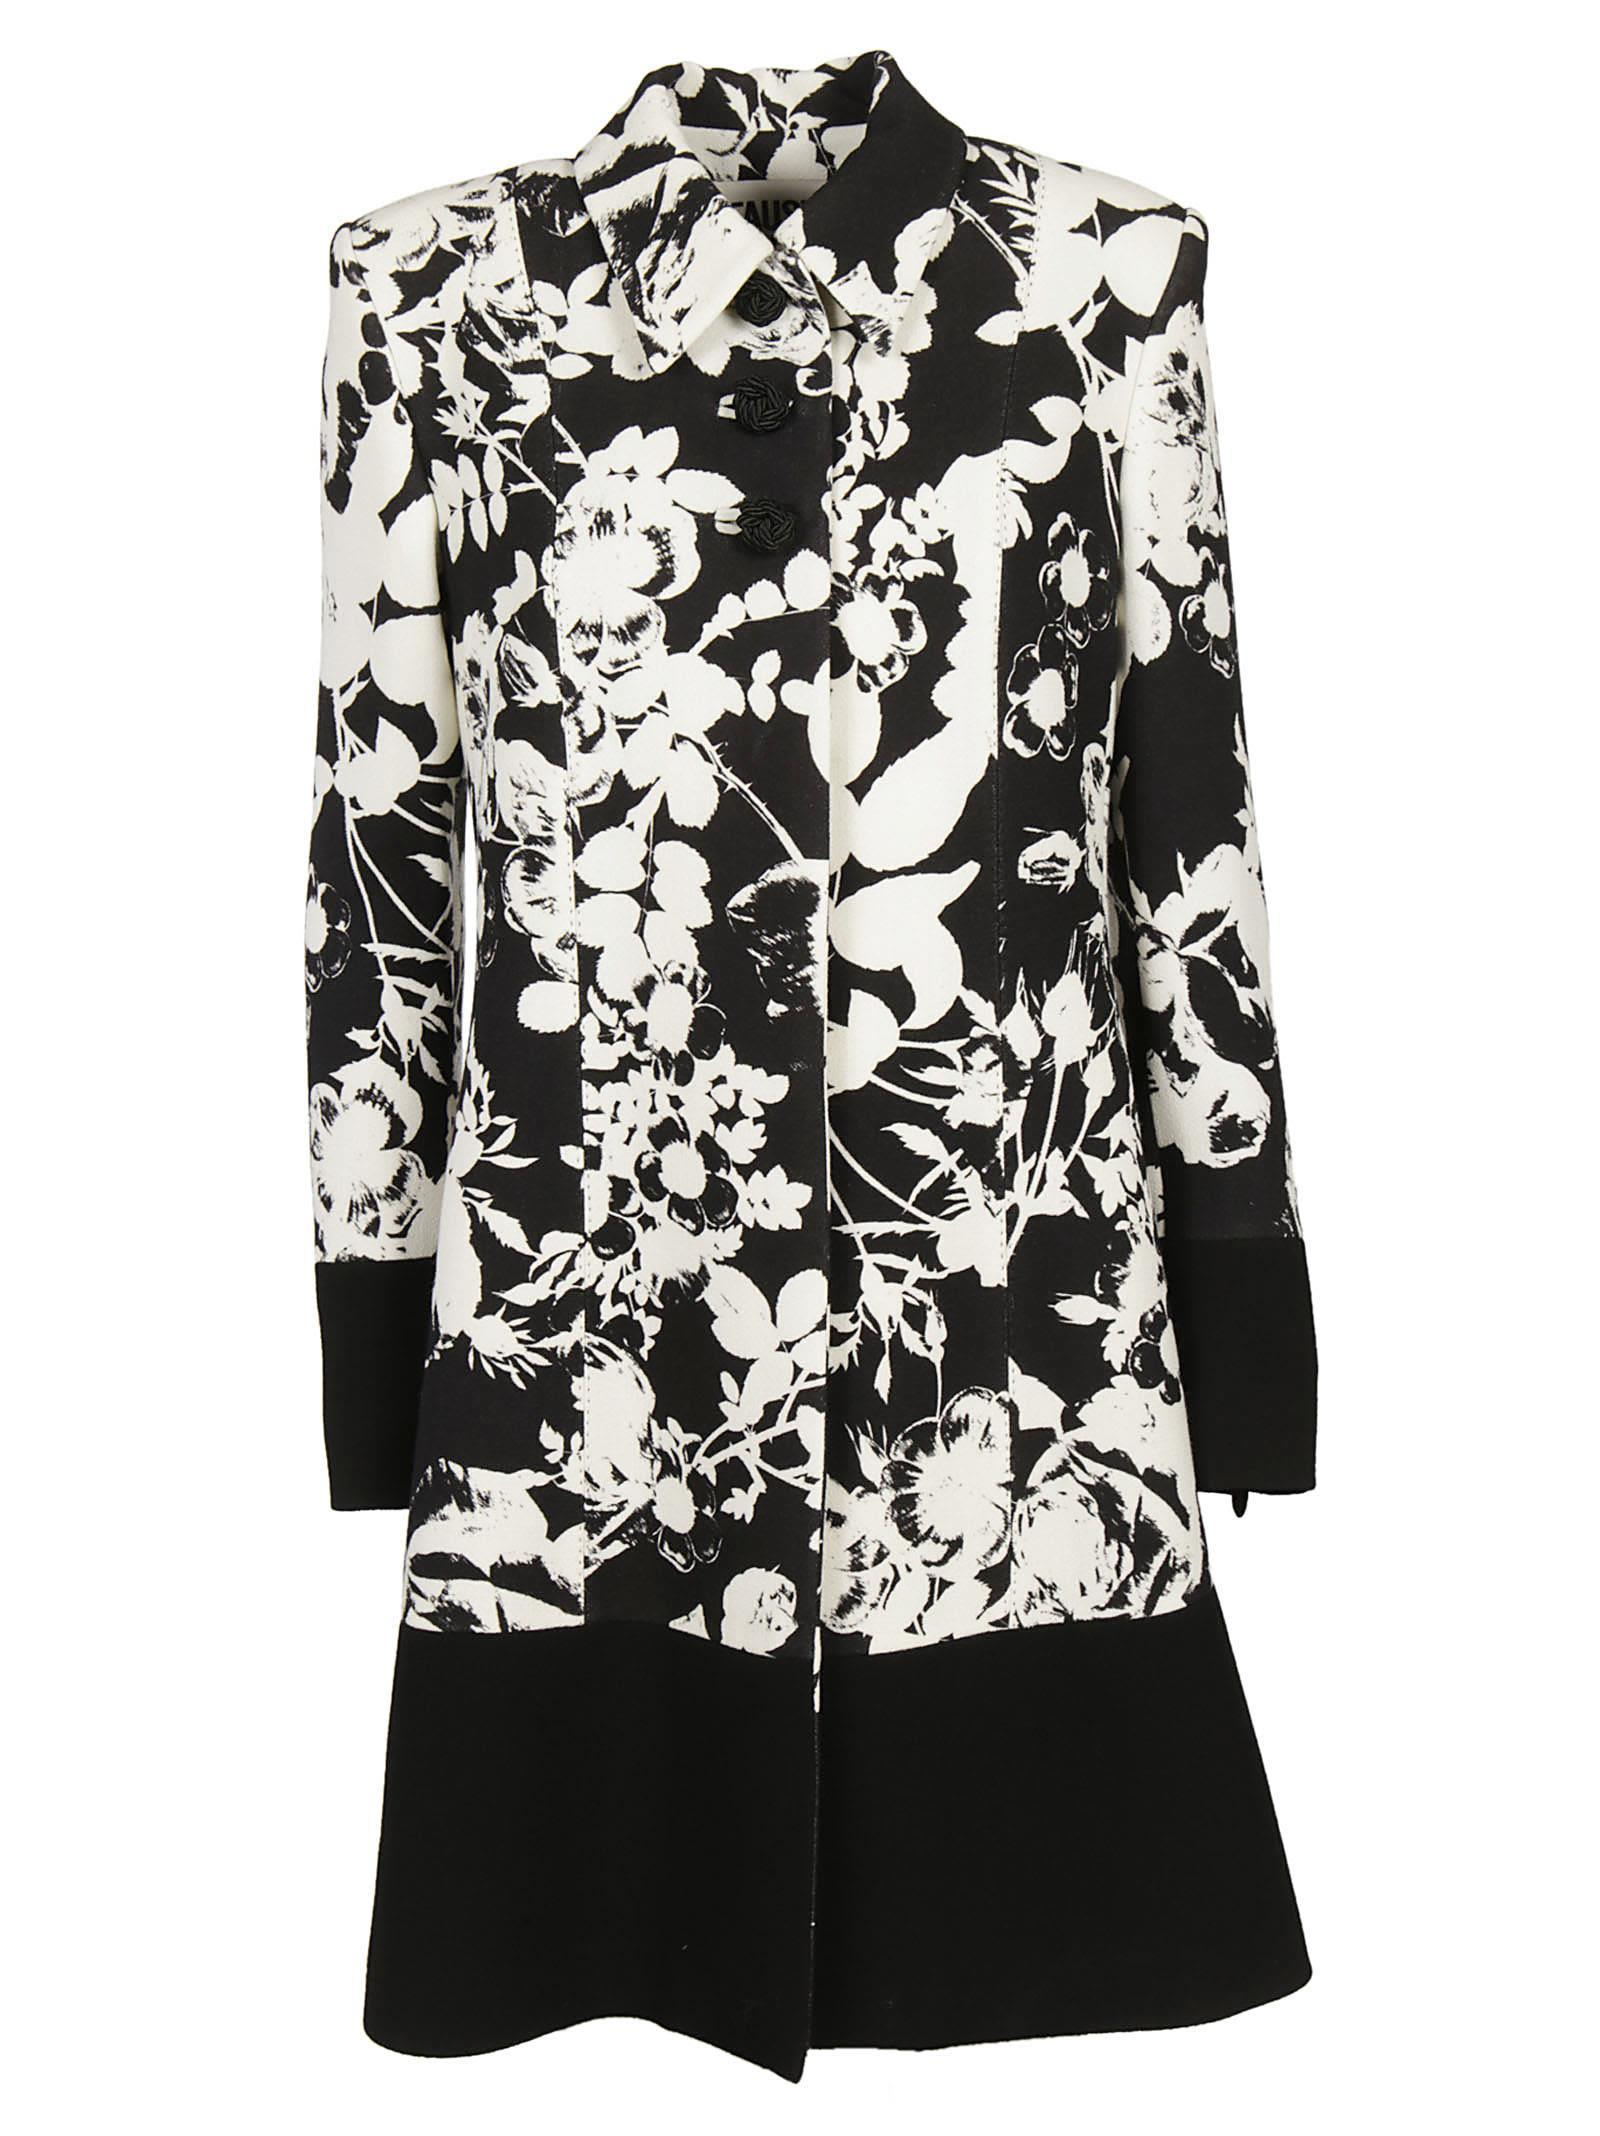 Fausto Puglisi Floral Embroidered Coat In White